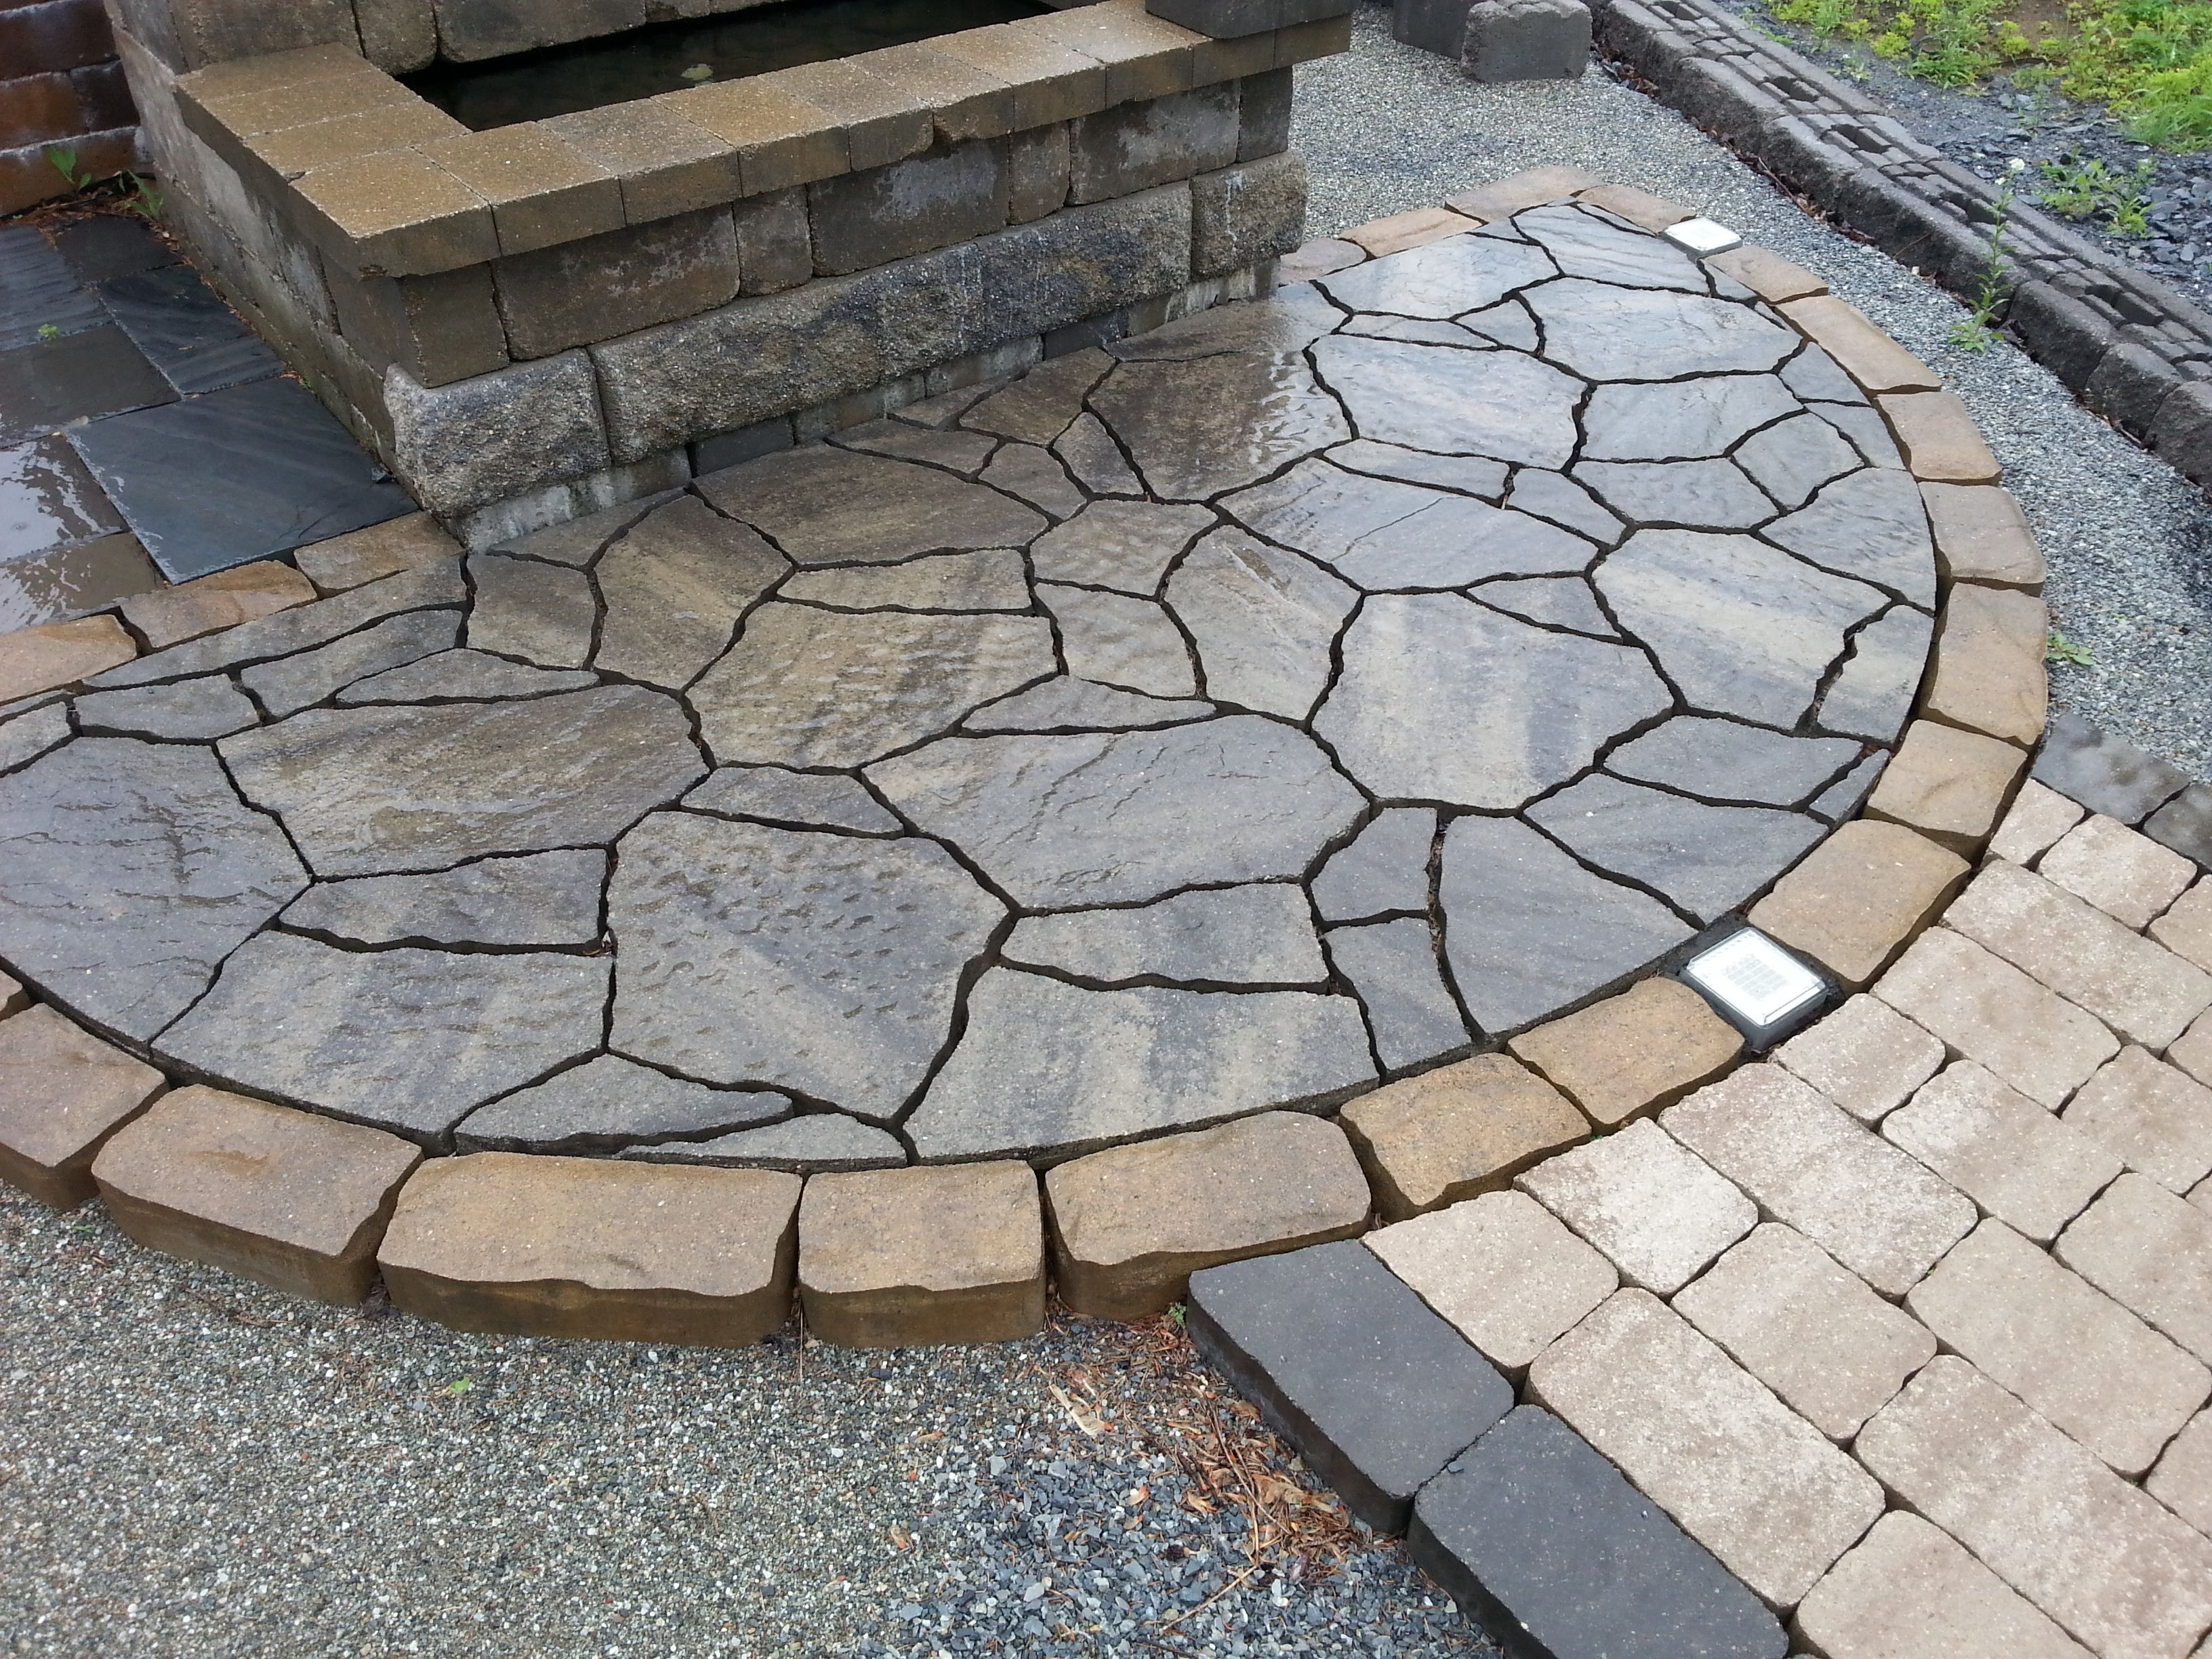 Belgard Mega Arbel In Sable Blend For The Front Patio